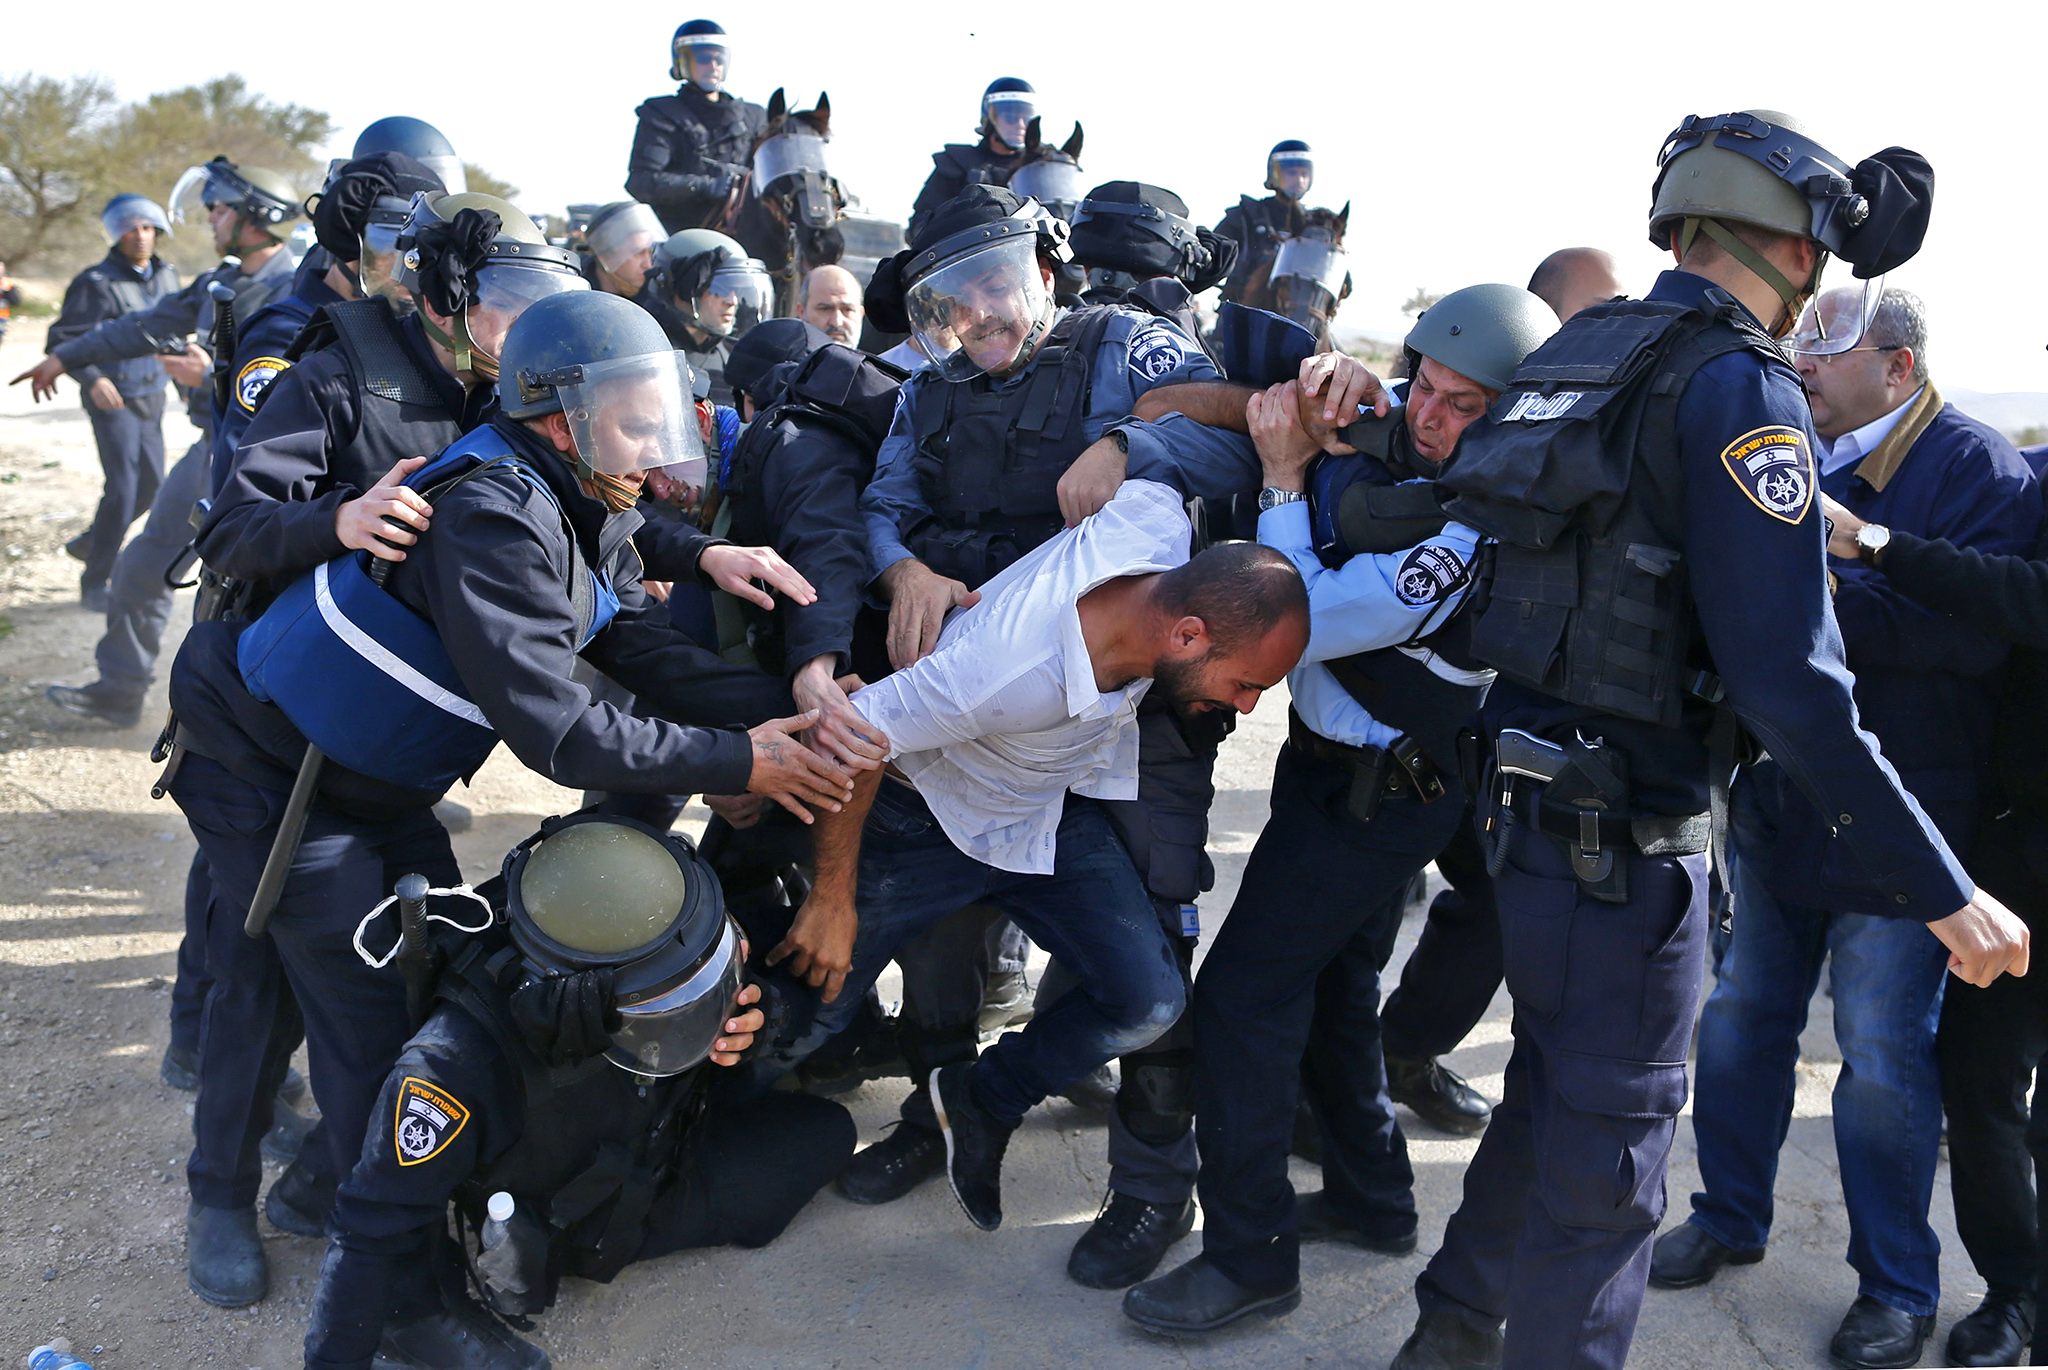 Israeli policemen detain a Bedouin man during clashes that followed a protest against home demolitions on January 18, 2017 in the Bedouin village of Umm al-Hiran, which is not recognized by the Israeli government, near the southern city of Beersheba, in the Negev desert. An Israeli policeman was killed while taking part in an operation to demolish homes in the Bedouin village, with authorities claiming he was targeted in a car-ramming attack. The driver was earlier reported shot dead by police as residents disputed the police version of events, saying the driver was heading to the scene to talk with authorities in an attempt to halt the demolitions. / AFP PHOTO / AHMAD GHARABLIAHMAD GHARABLI/AFP/Getty Images